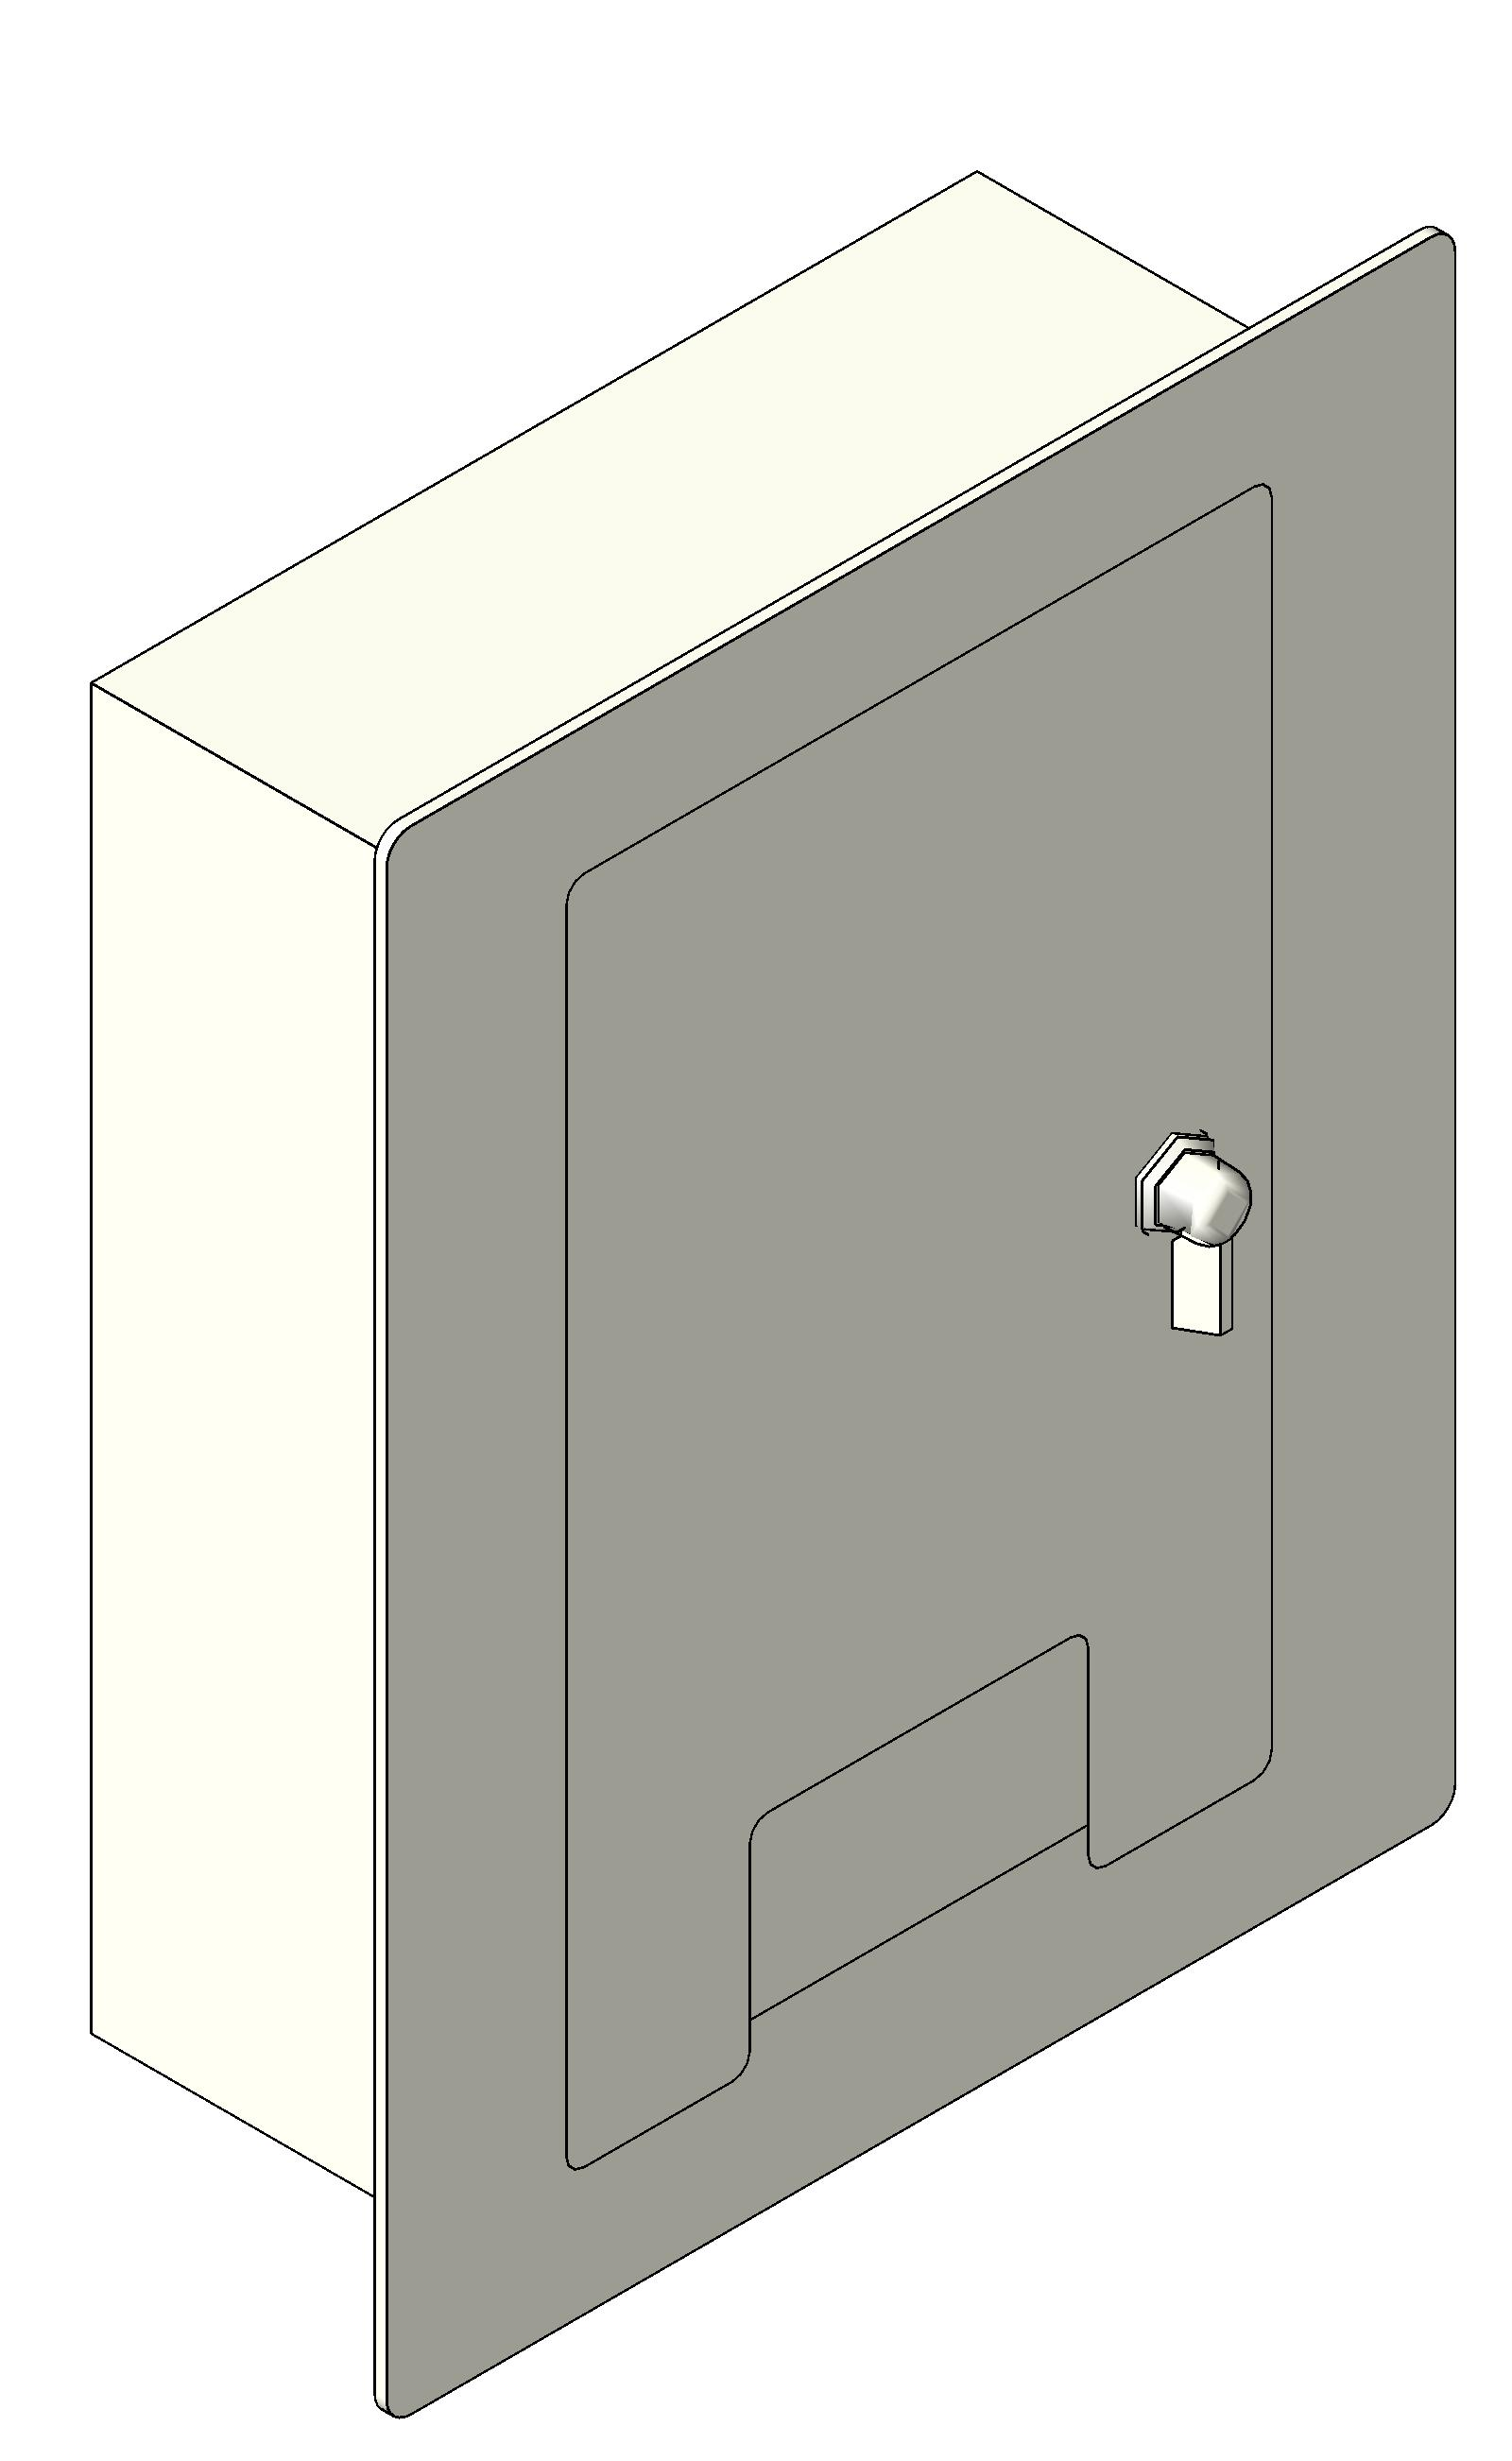 Electrical Wall Boxes : Bim objects families electrical devices